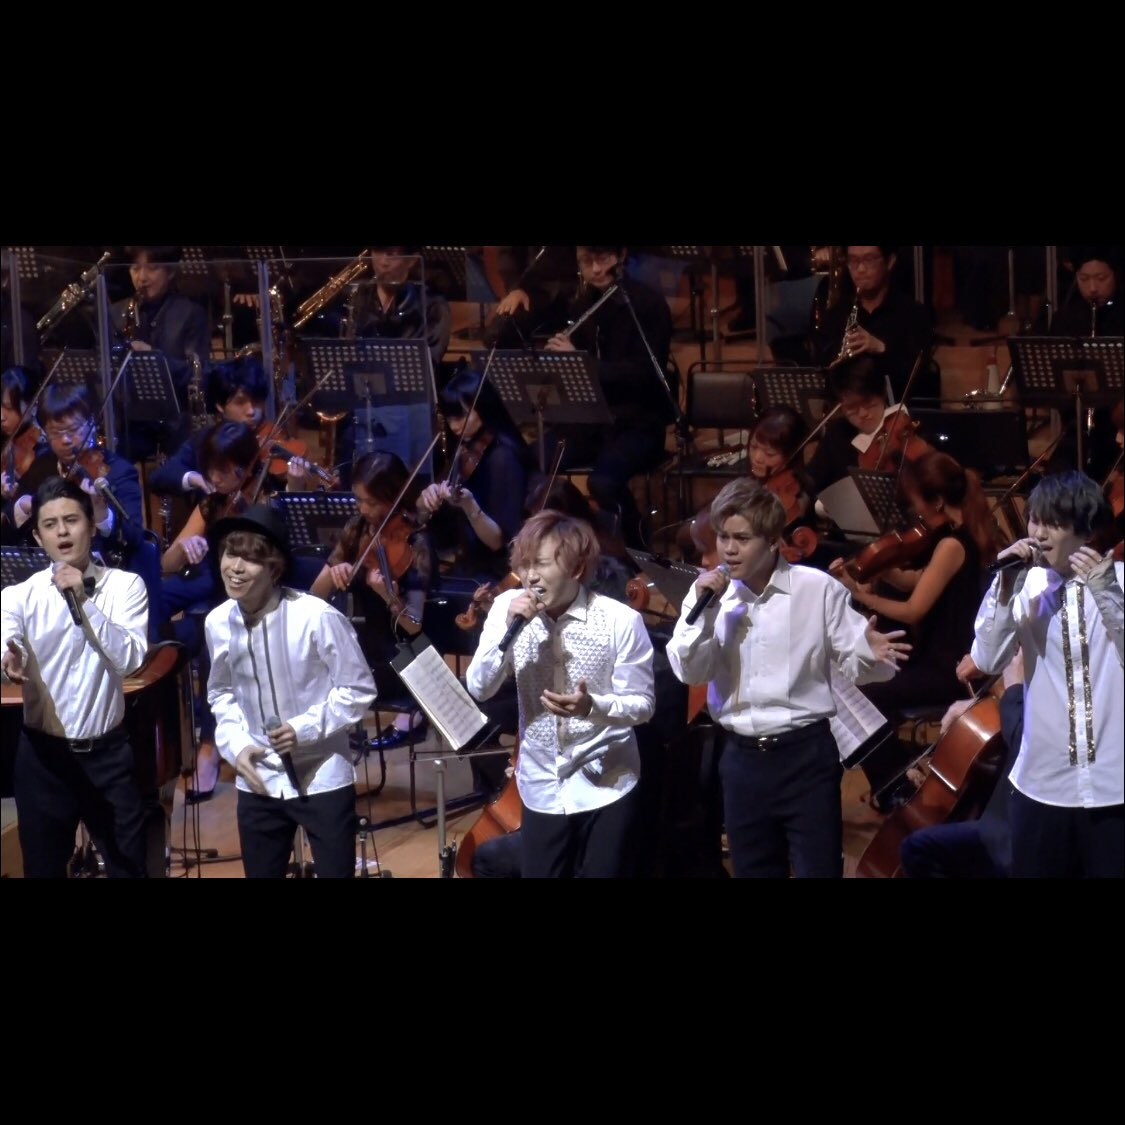 UNIONE Perform Live Orchestral Version Of Code Geass Ending